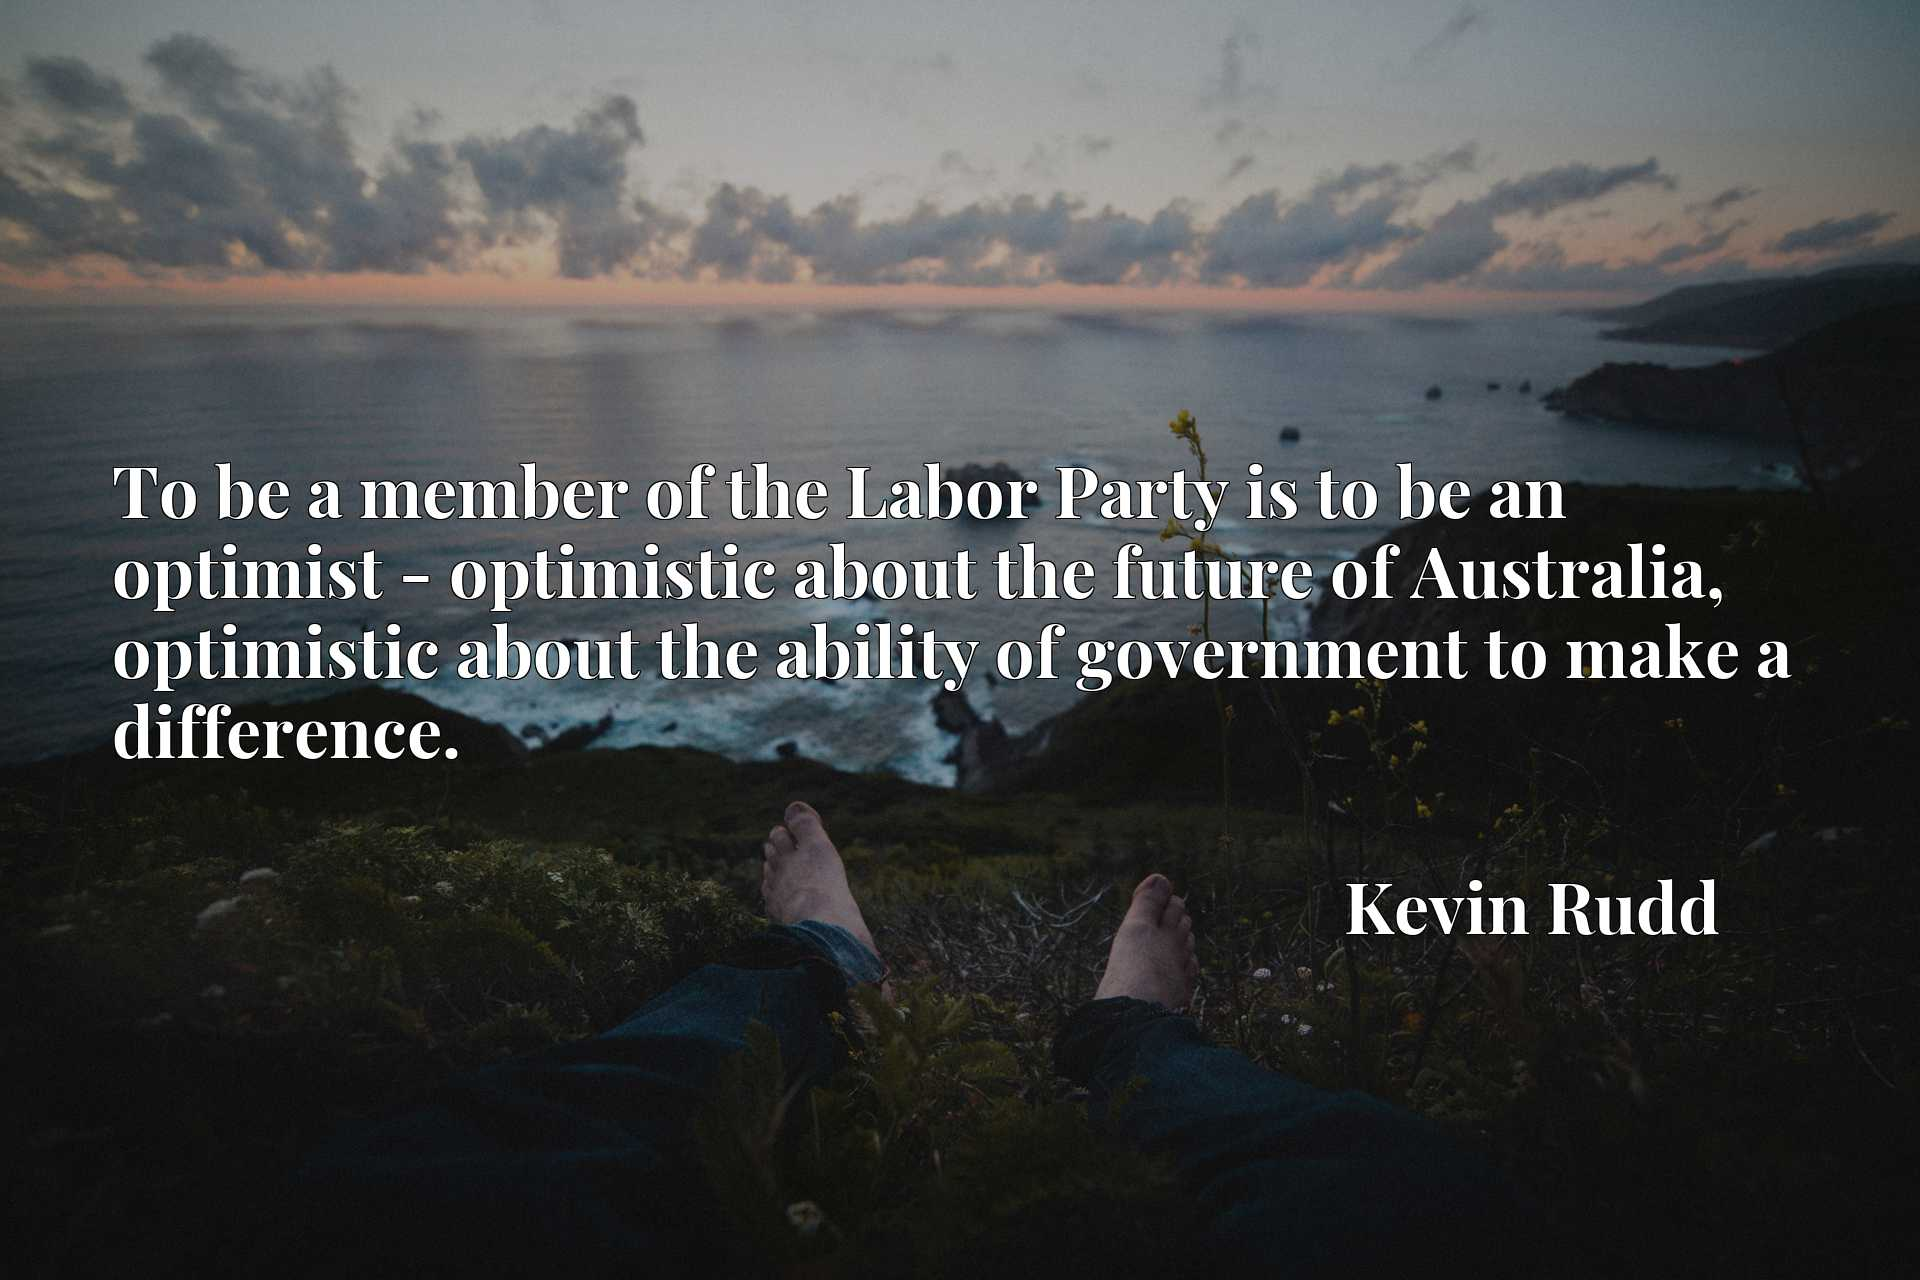 To be a member of the Labor Party is to be an optimist - optimistic about the future of Australia, optimistic about the ability of government to make a difference.